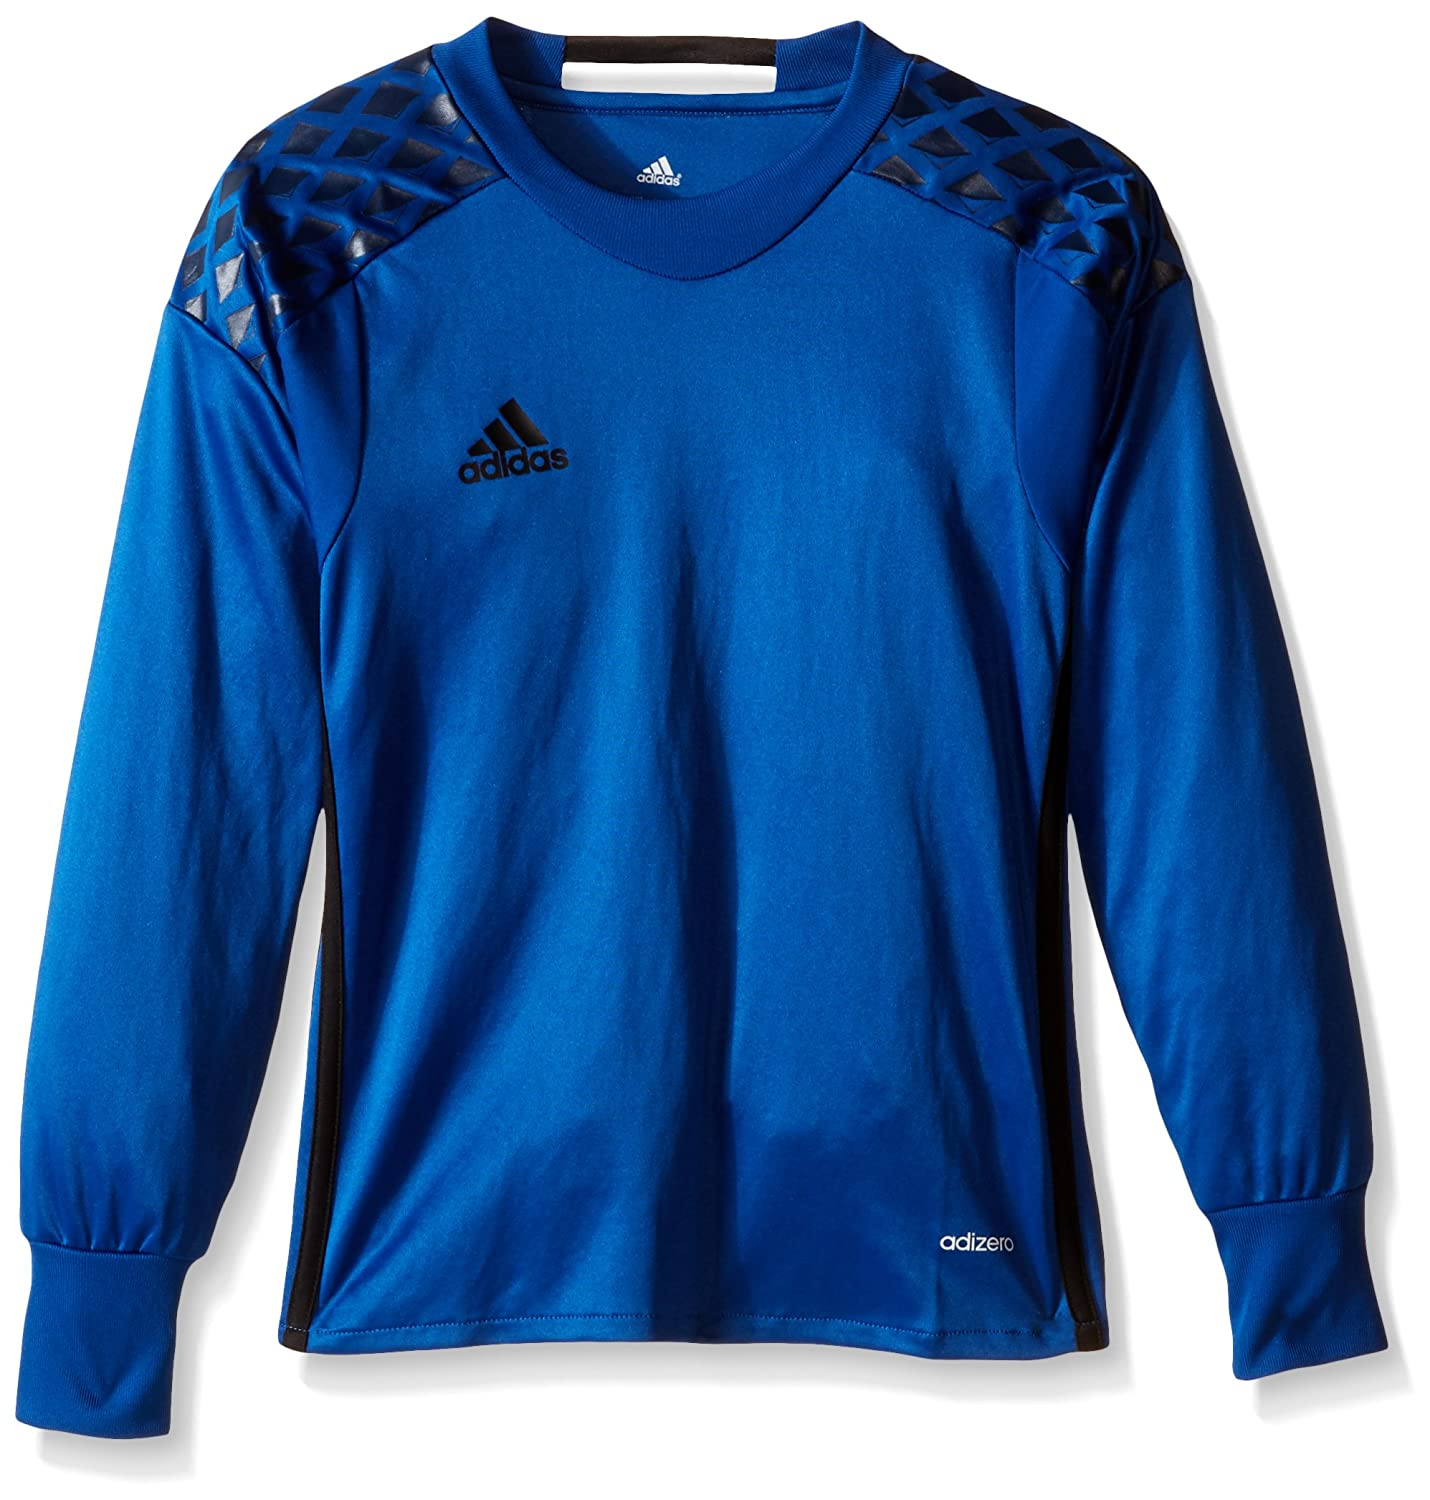 7831d338798 Amazon.com   adidas Youth Onore 16 Goalkeeping Jersey   Sports   Outdoors